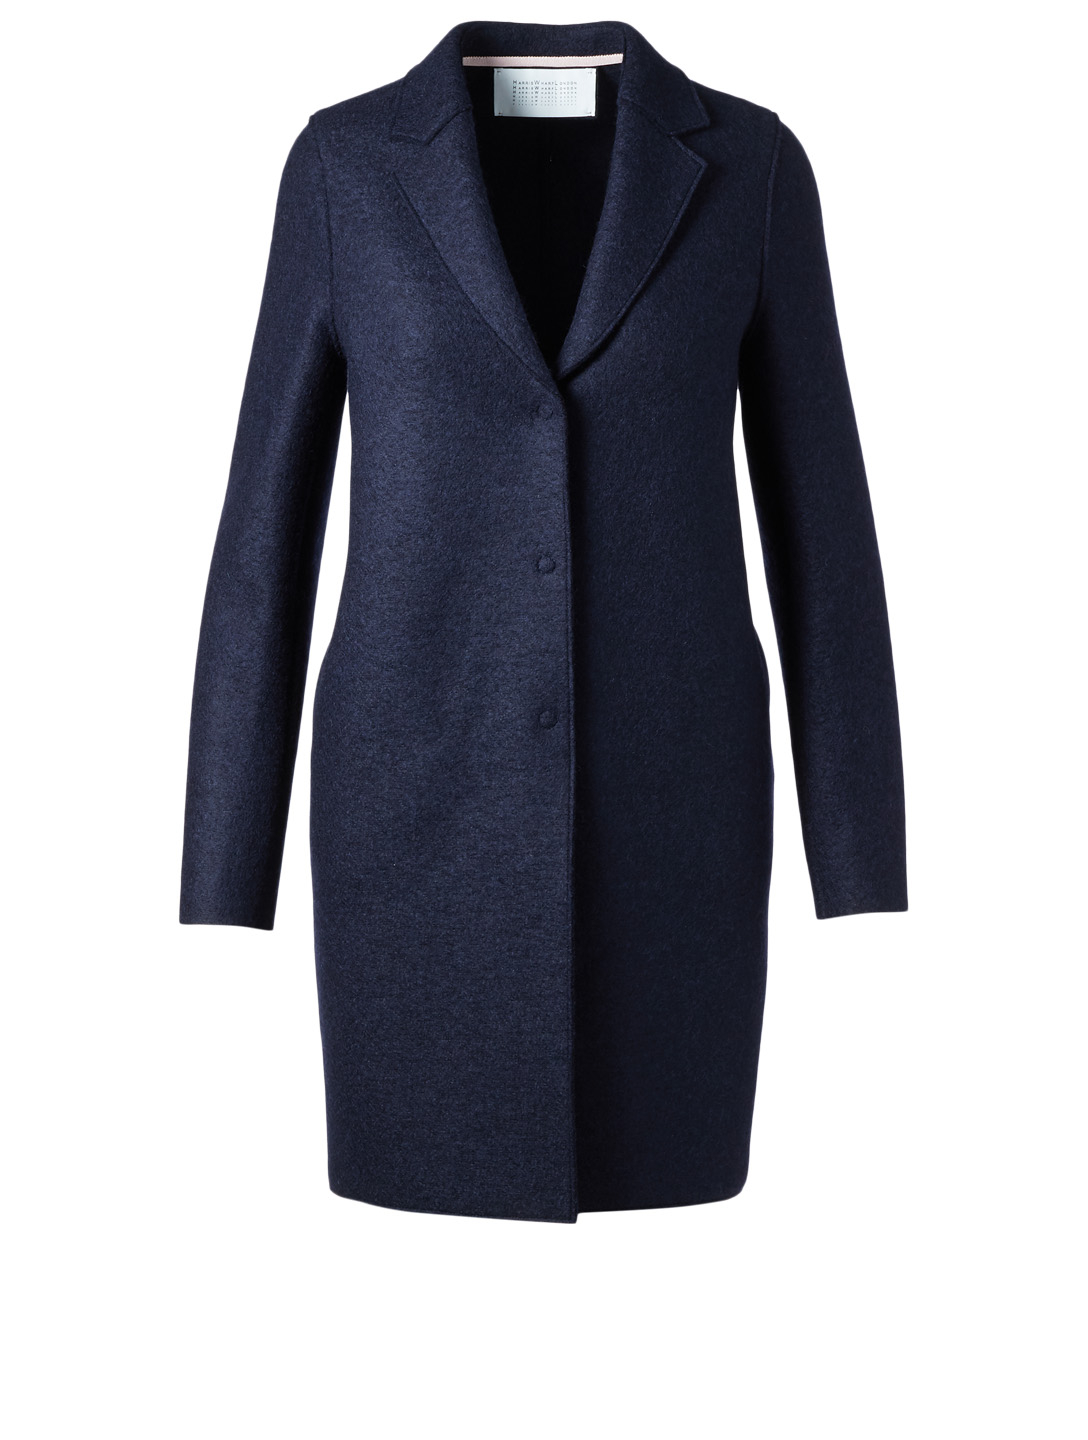 HARRIS WHARF LONDON Pressed Wool Cocoon Coat Women's Blue